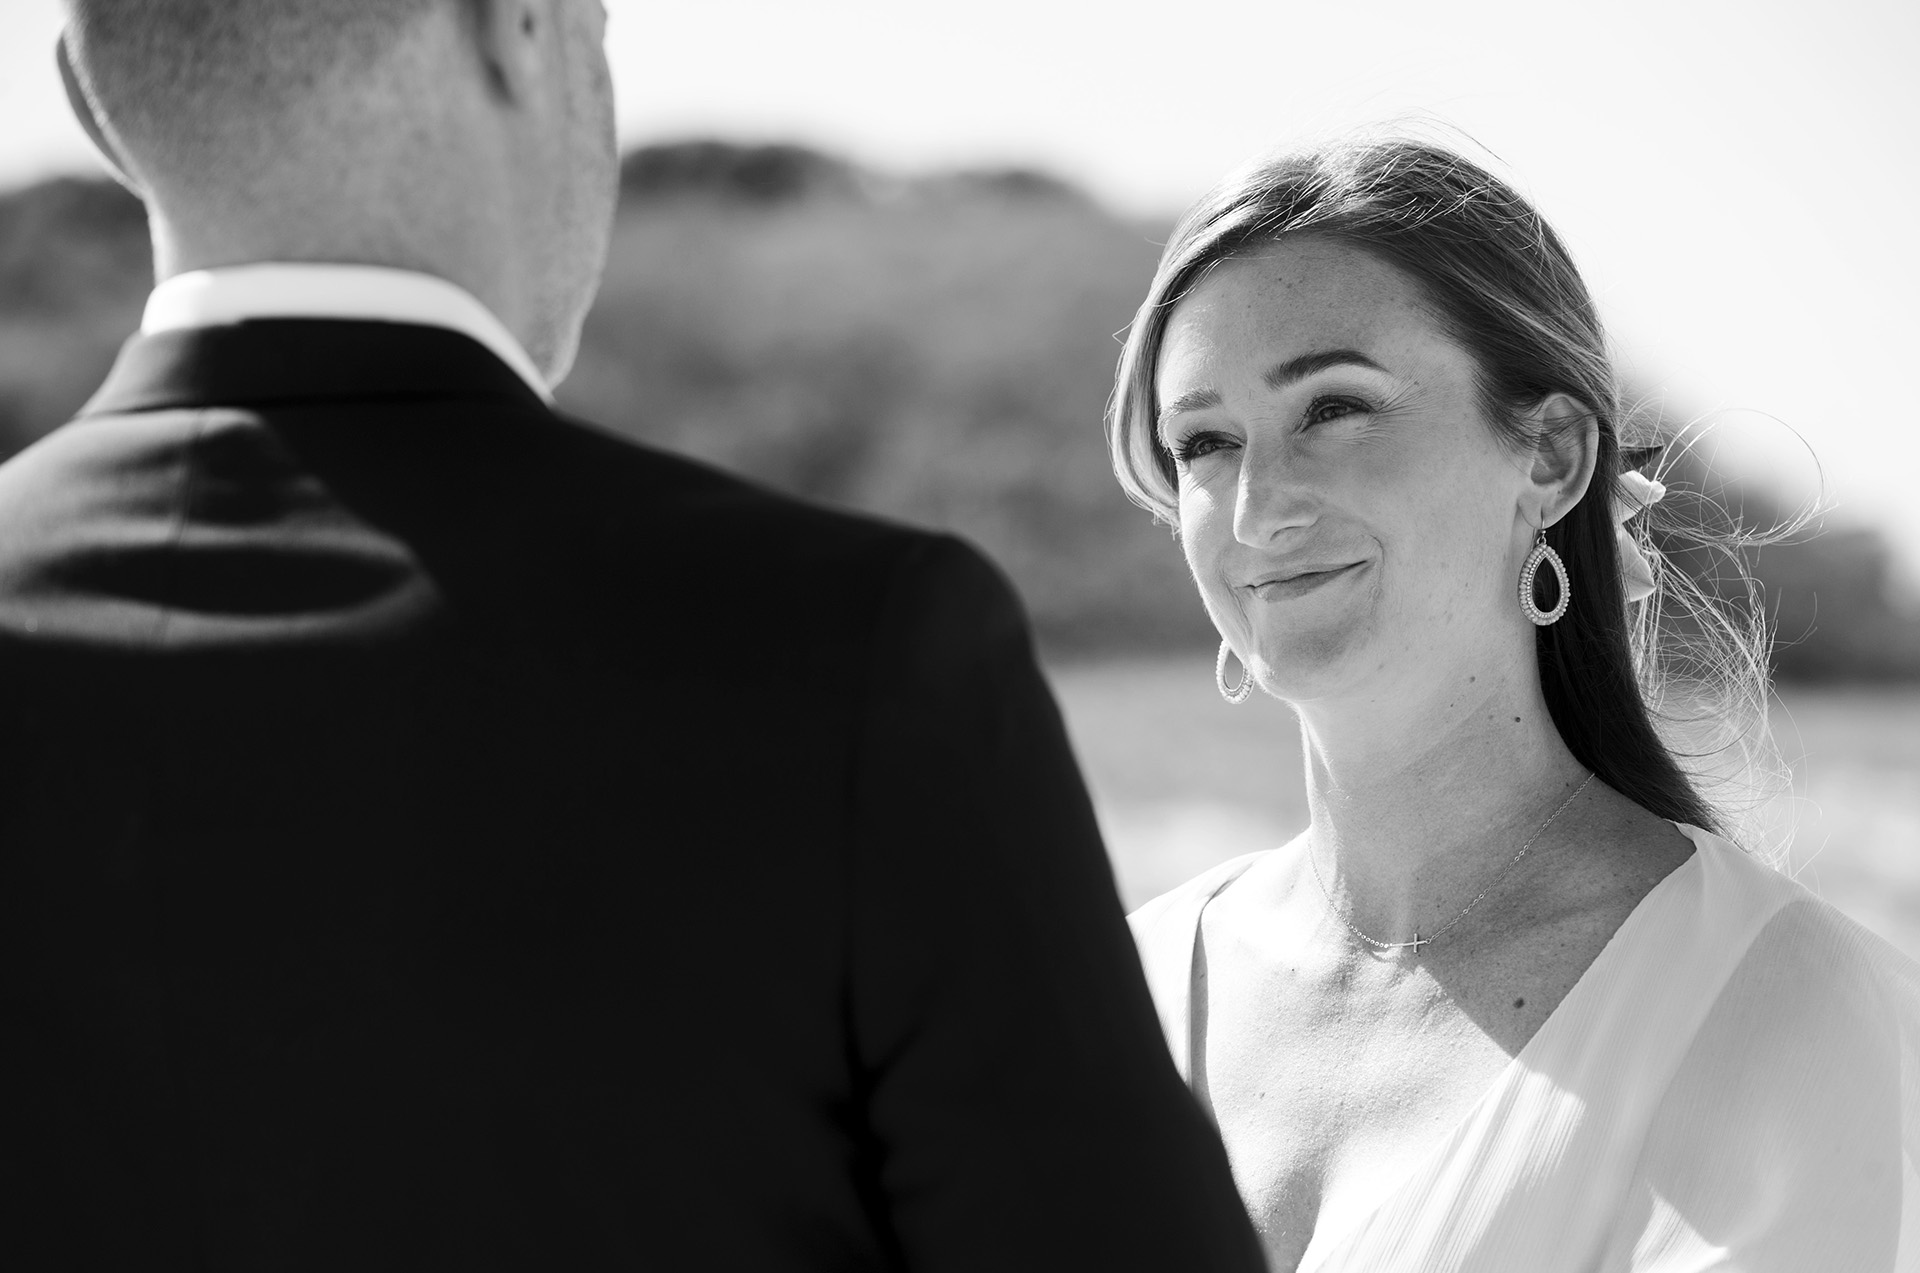 MA Beach Elopement Wedding Ceremony Photo   The bride smiling at the groom during ceremony